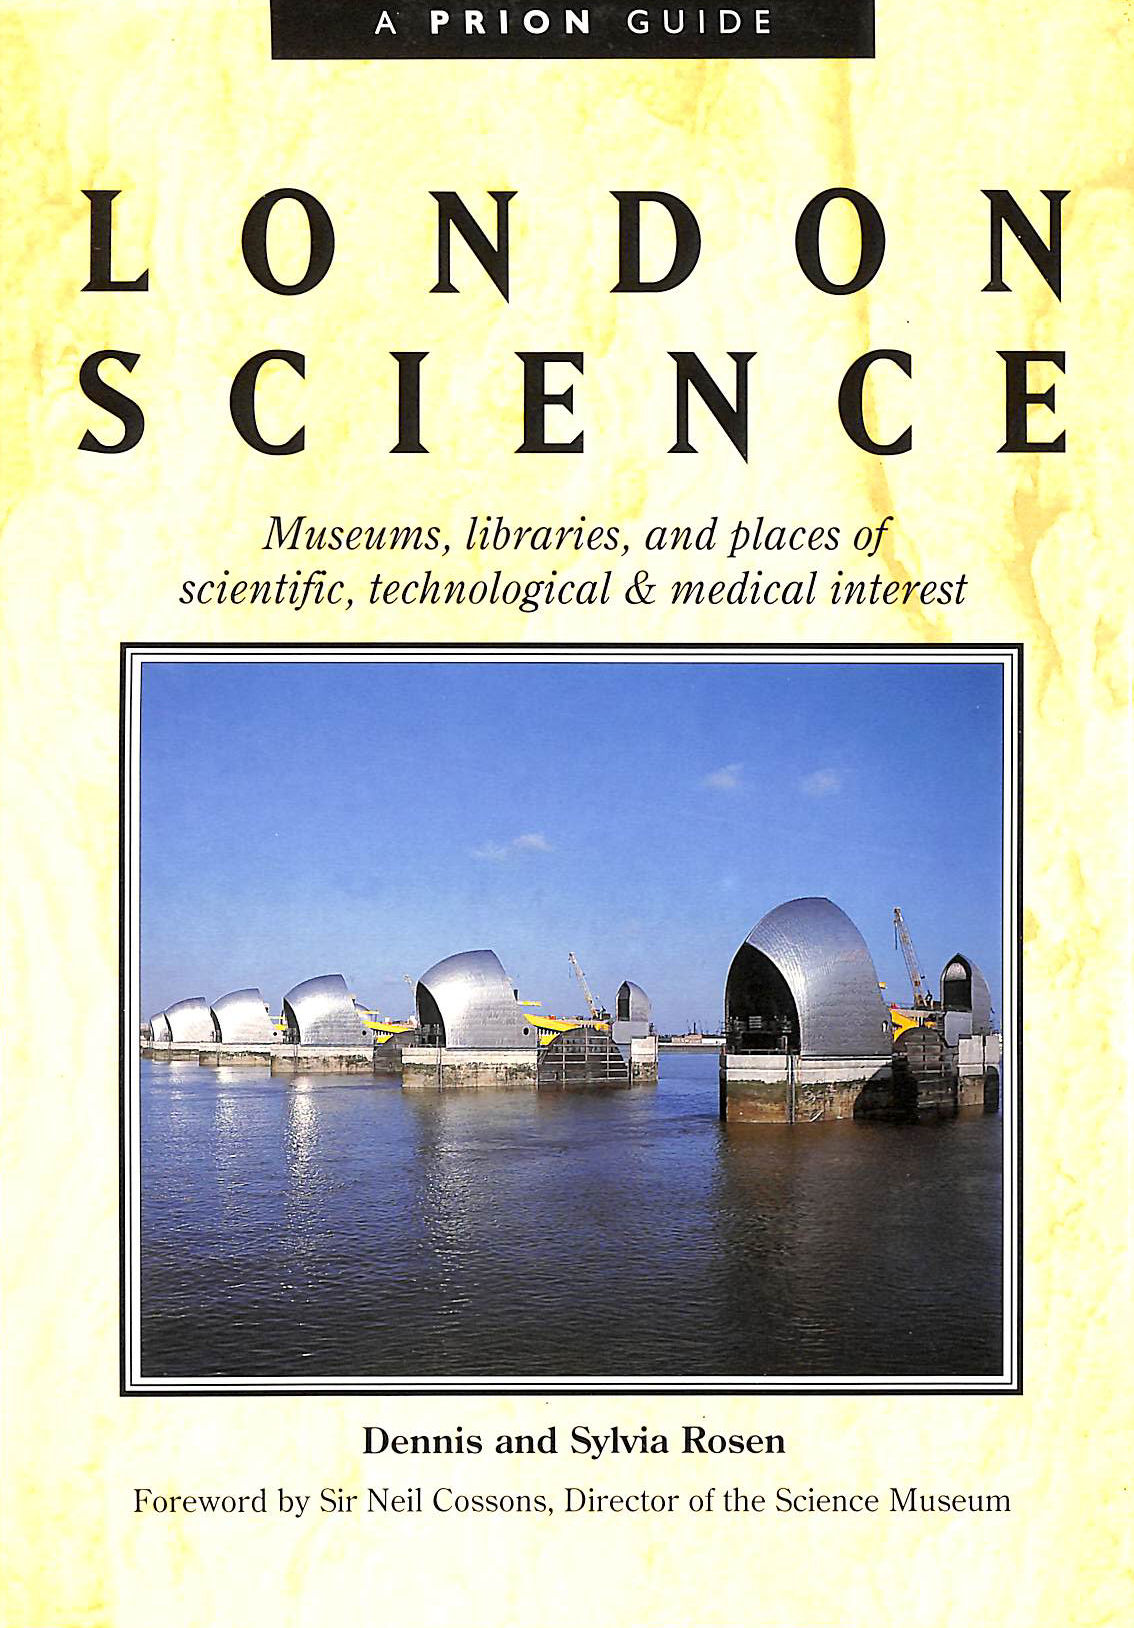 Image for London Science: Museums, Libraries and Places of Scientific, Technological and Medical Interest (A Prion guide)